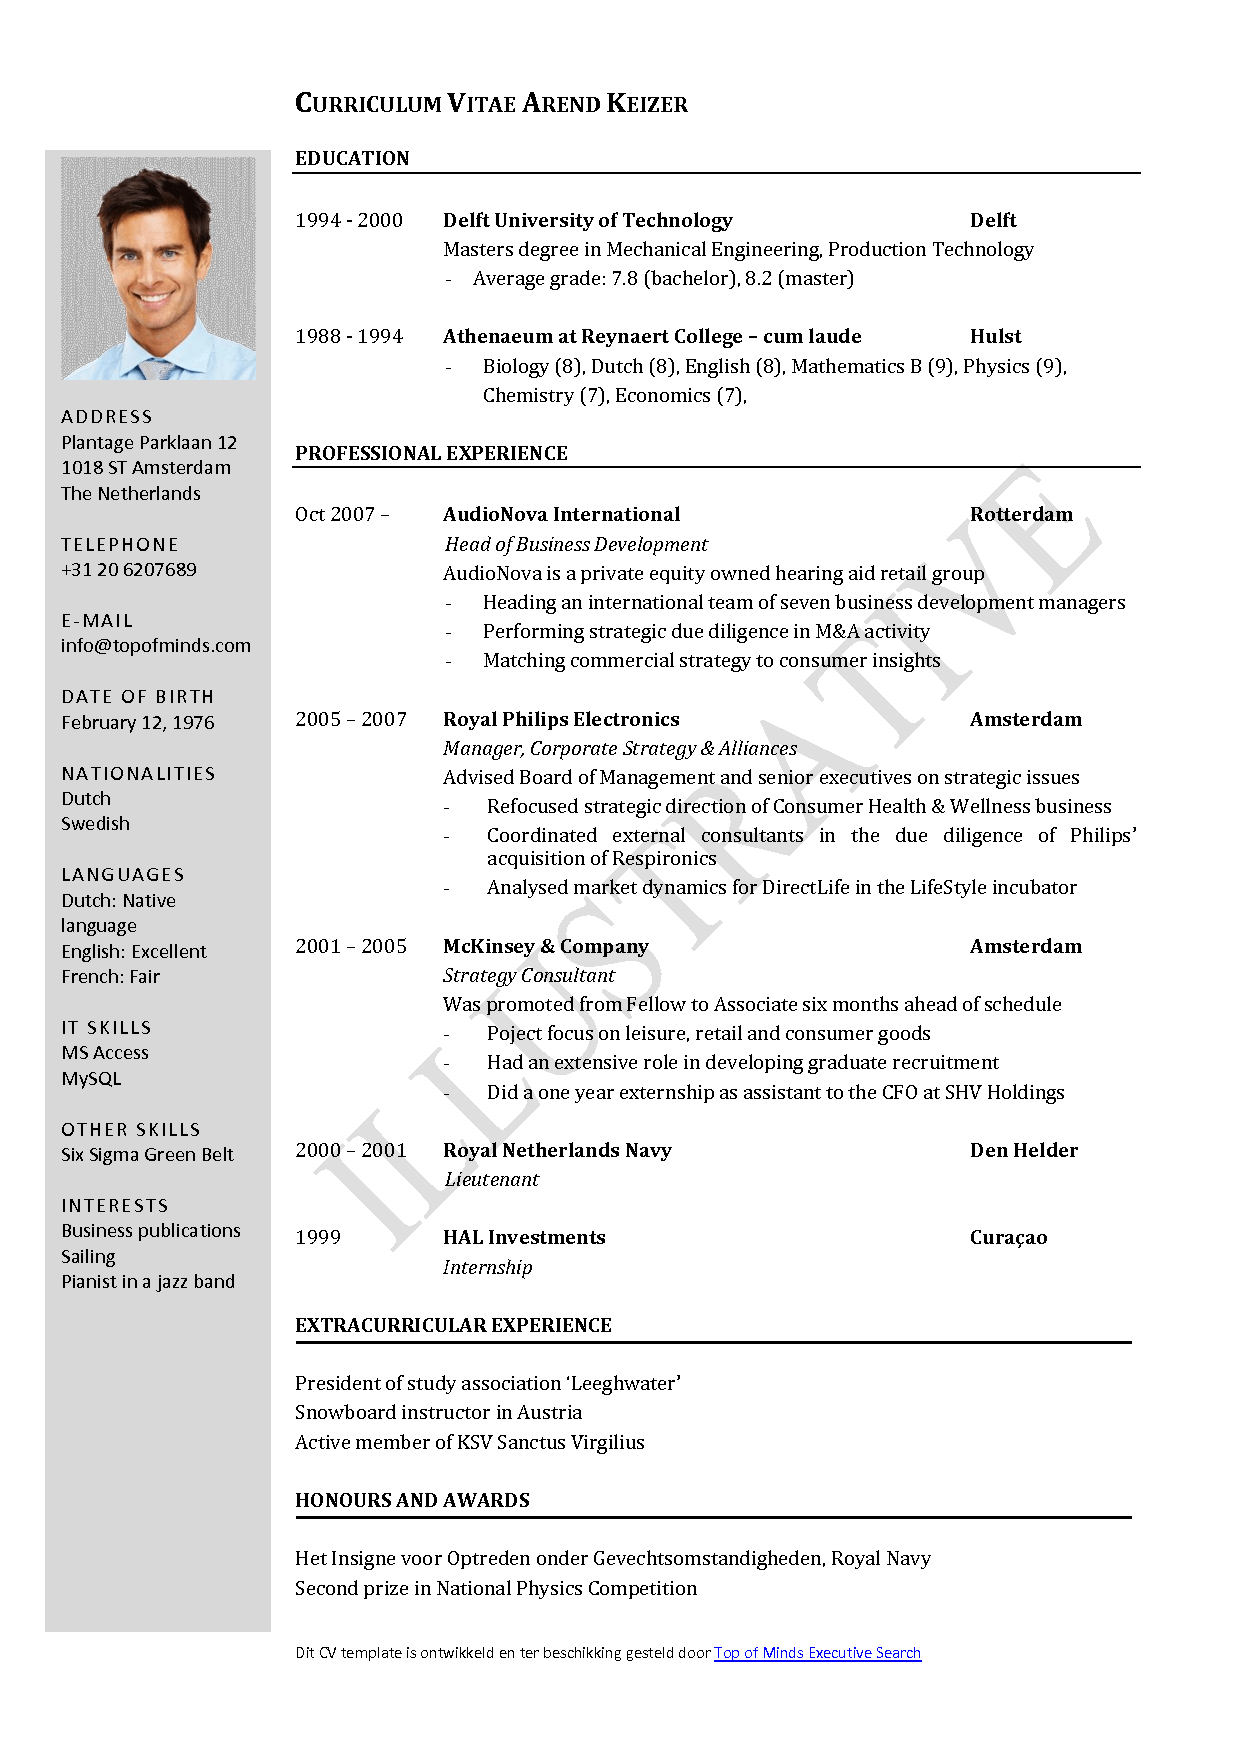 job application cv pdf basic job application templates job application cv pdf basic job application templates forms